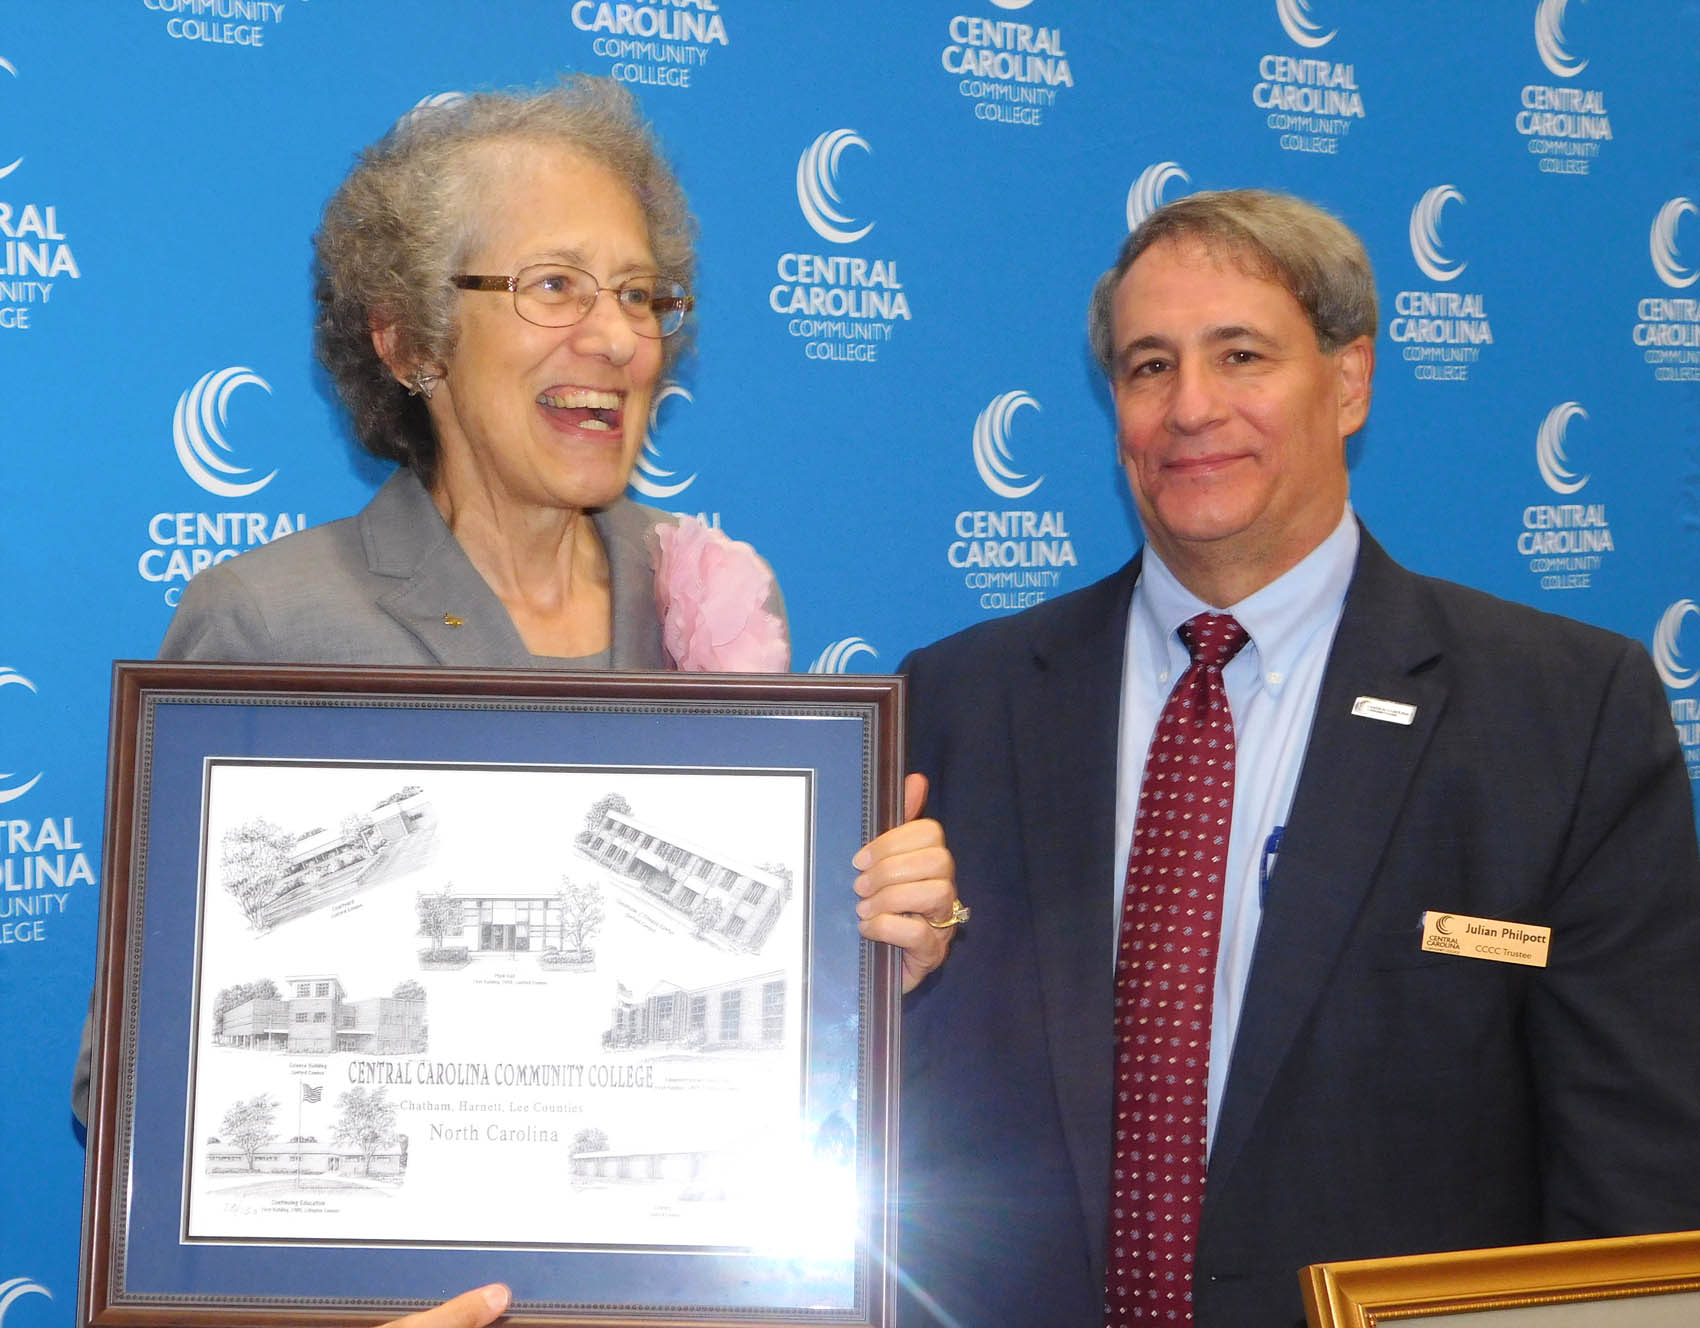 Click to enlarge,  Martha Underwood (left), pictured with CCCC Board of Trustees Chairman Julian Philpott (right), was presented with a Jerry Miller print of CCCC buildings, as she was honored for her service as a CCCC Trustee.